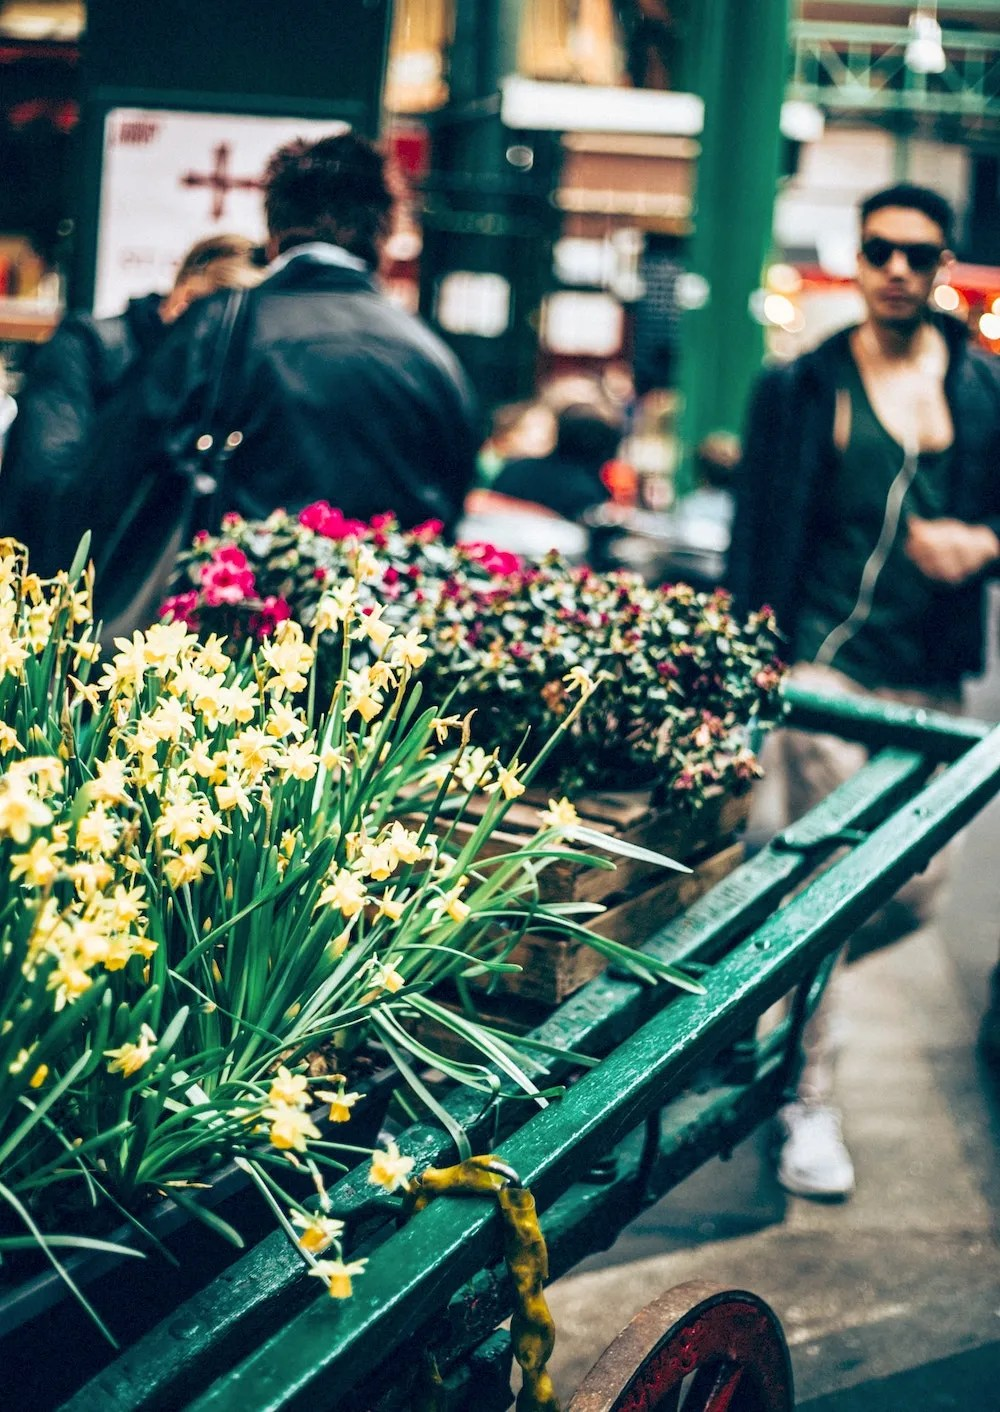 Other London Markets - Man walking past flower stand